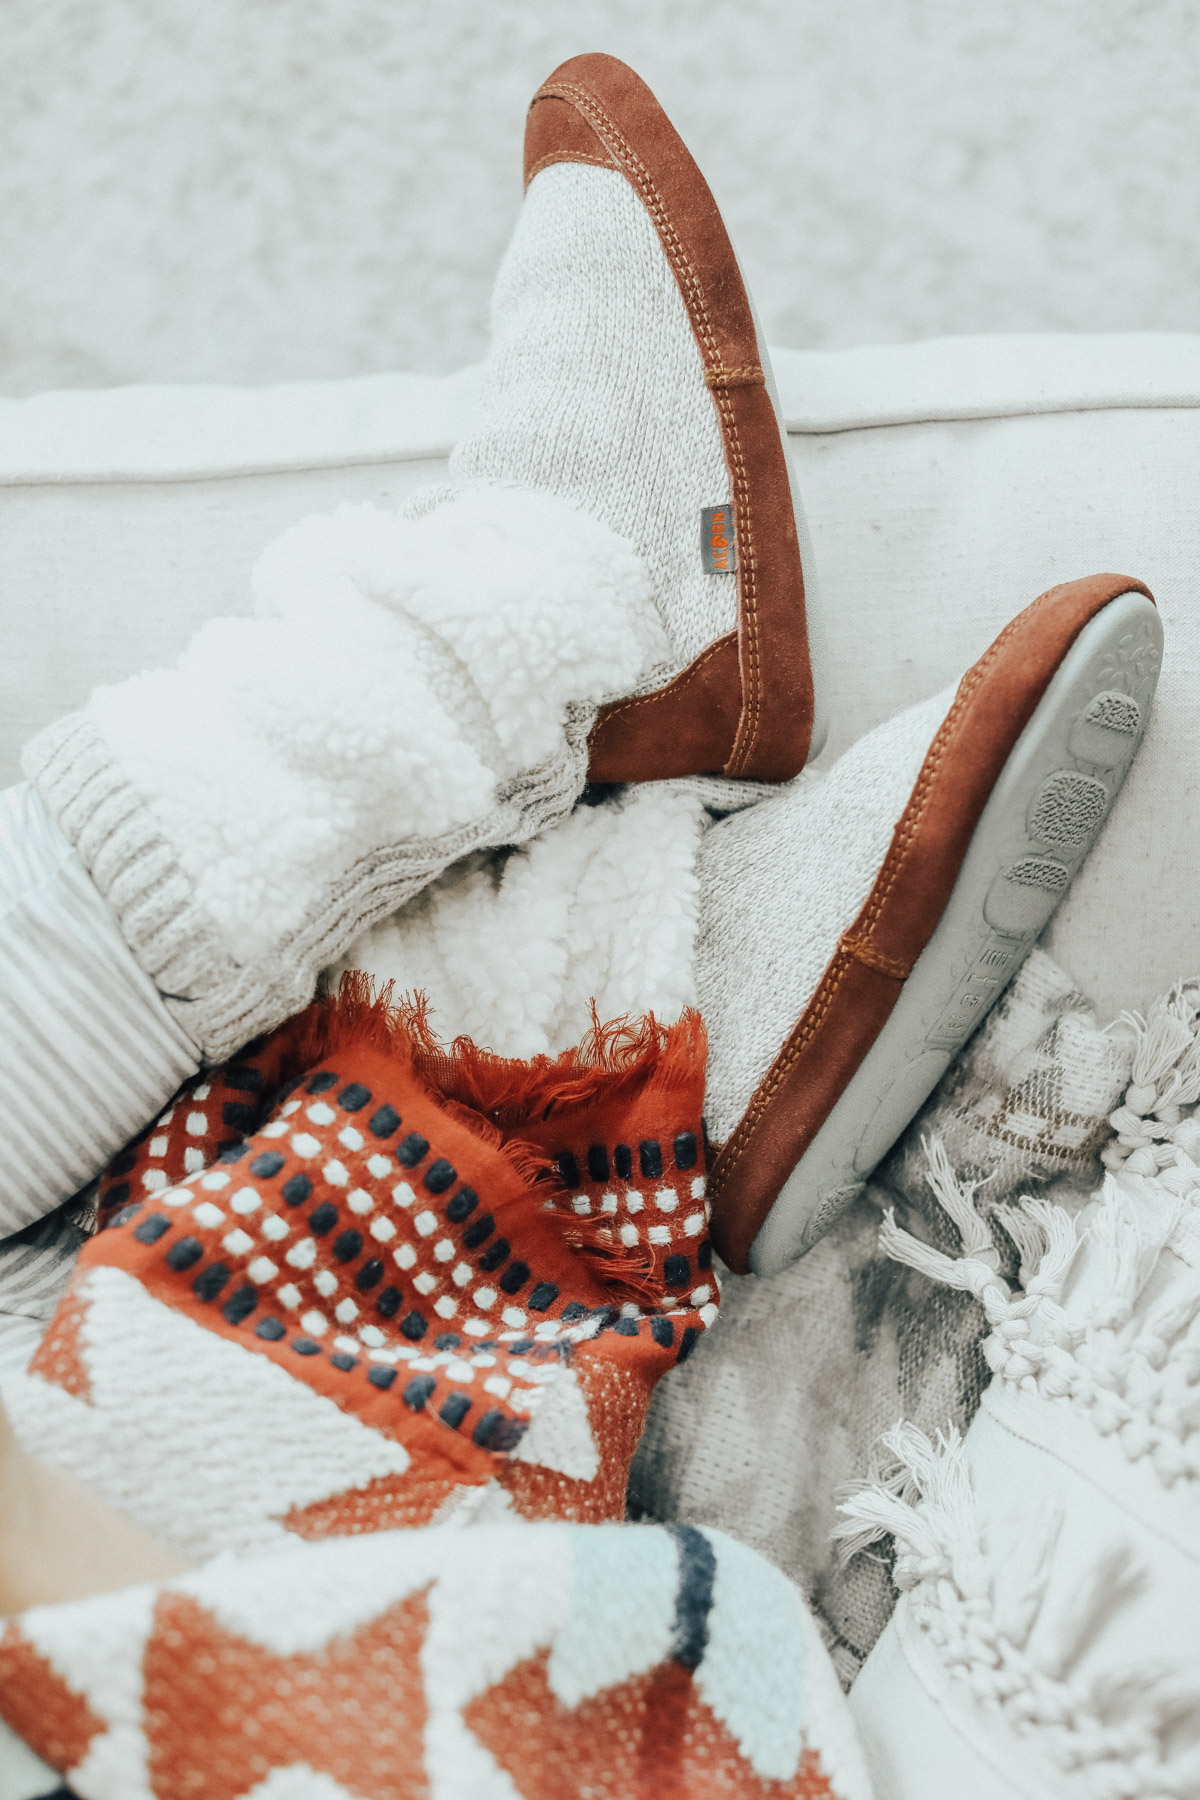 cozy winter outfit acorn slippers